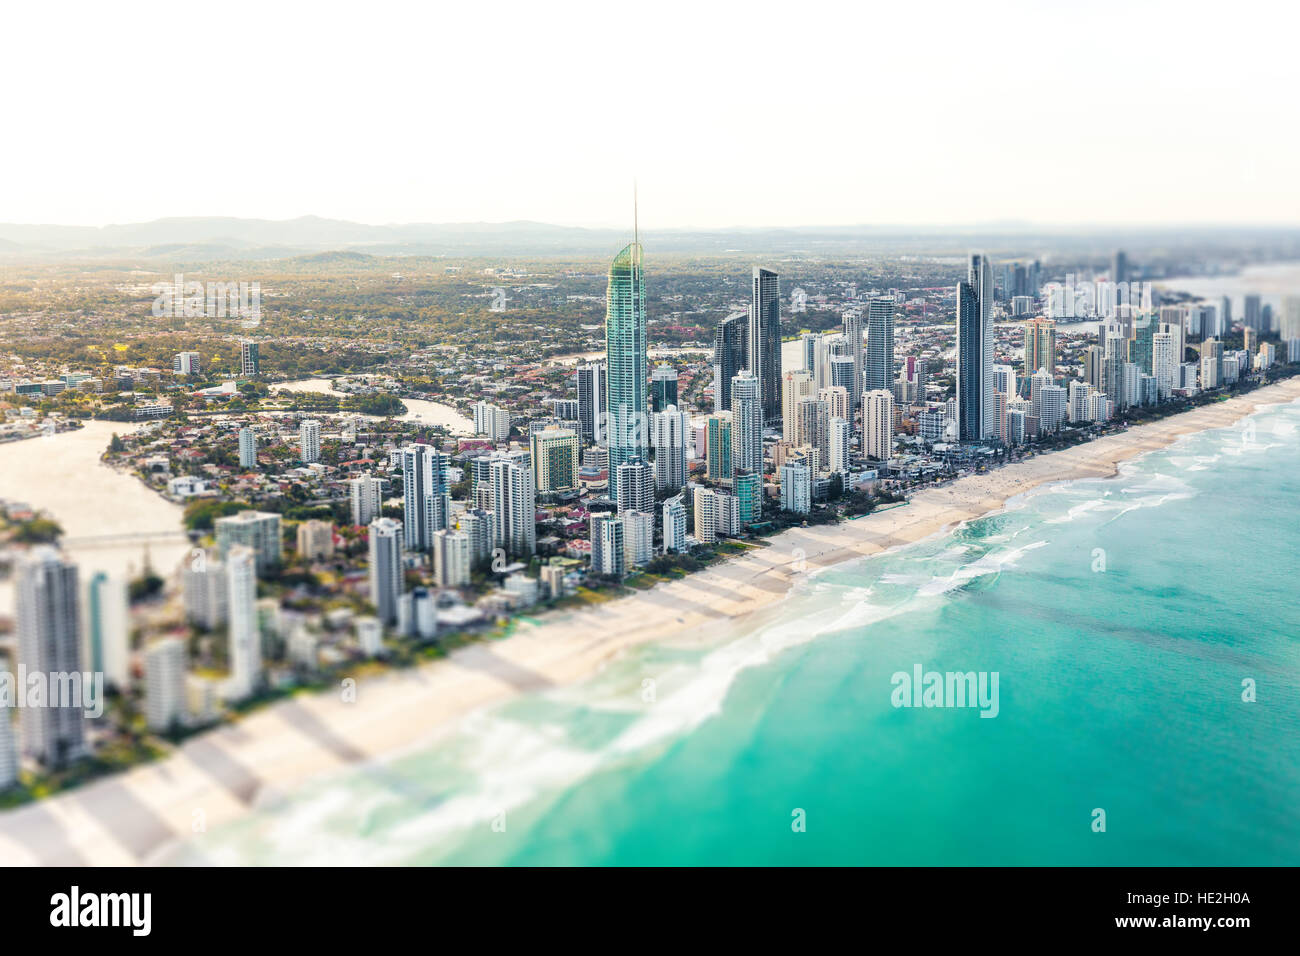 SURFERS PARADISE, AUS - SEPT 04 2016 Aerial view of Surfers Paradise on the Gold Coast, Queensland, Australia - Stock Image